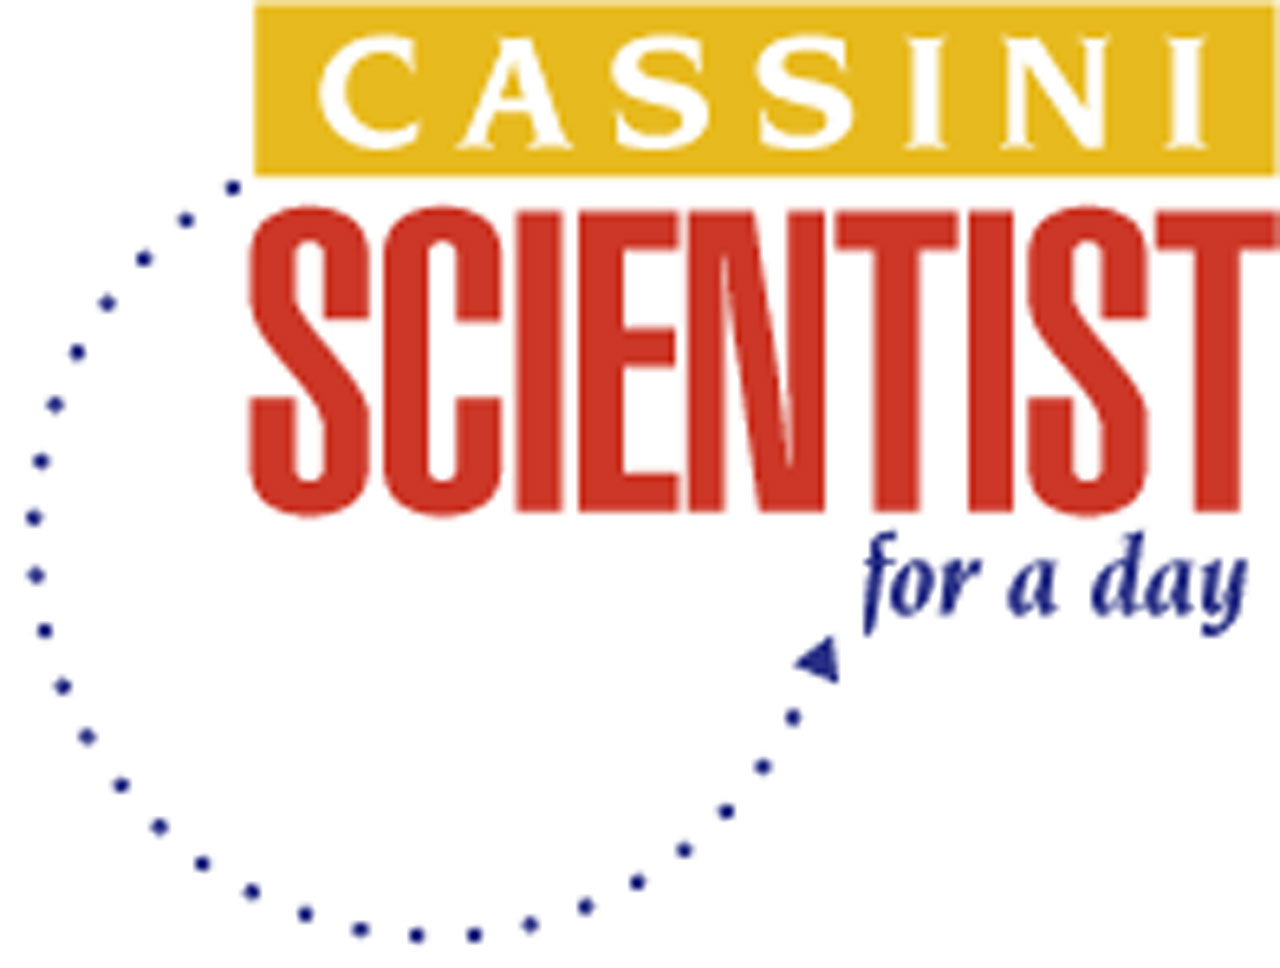 cassini scientist for a day essay contest 2012 Cassini scientist for a day is an essay contest designed to give students a taste of life as a scientist students study three possible targets that the.